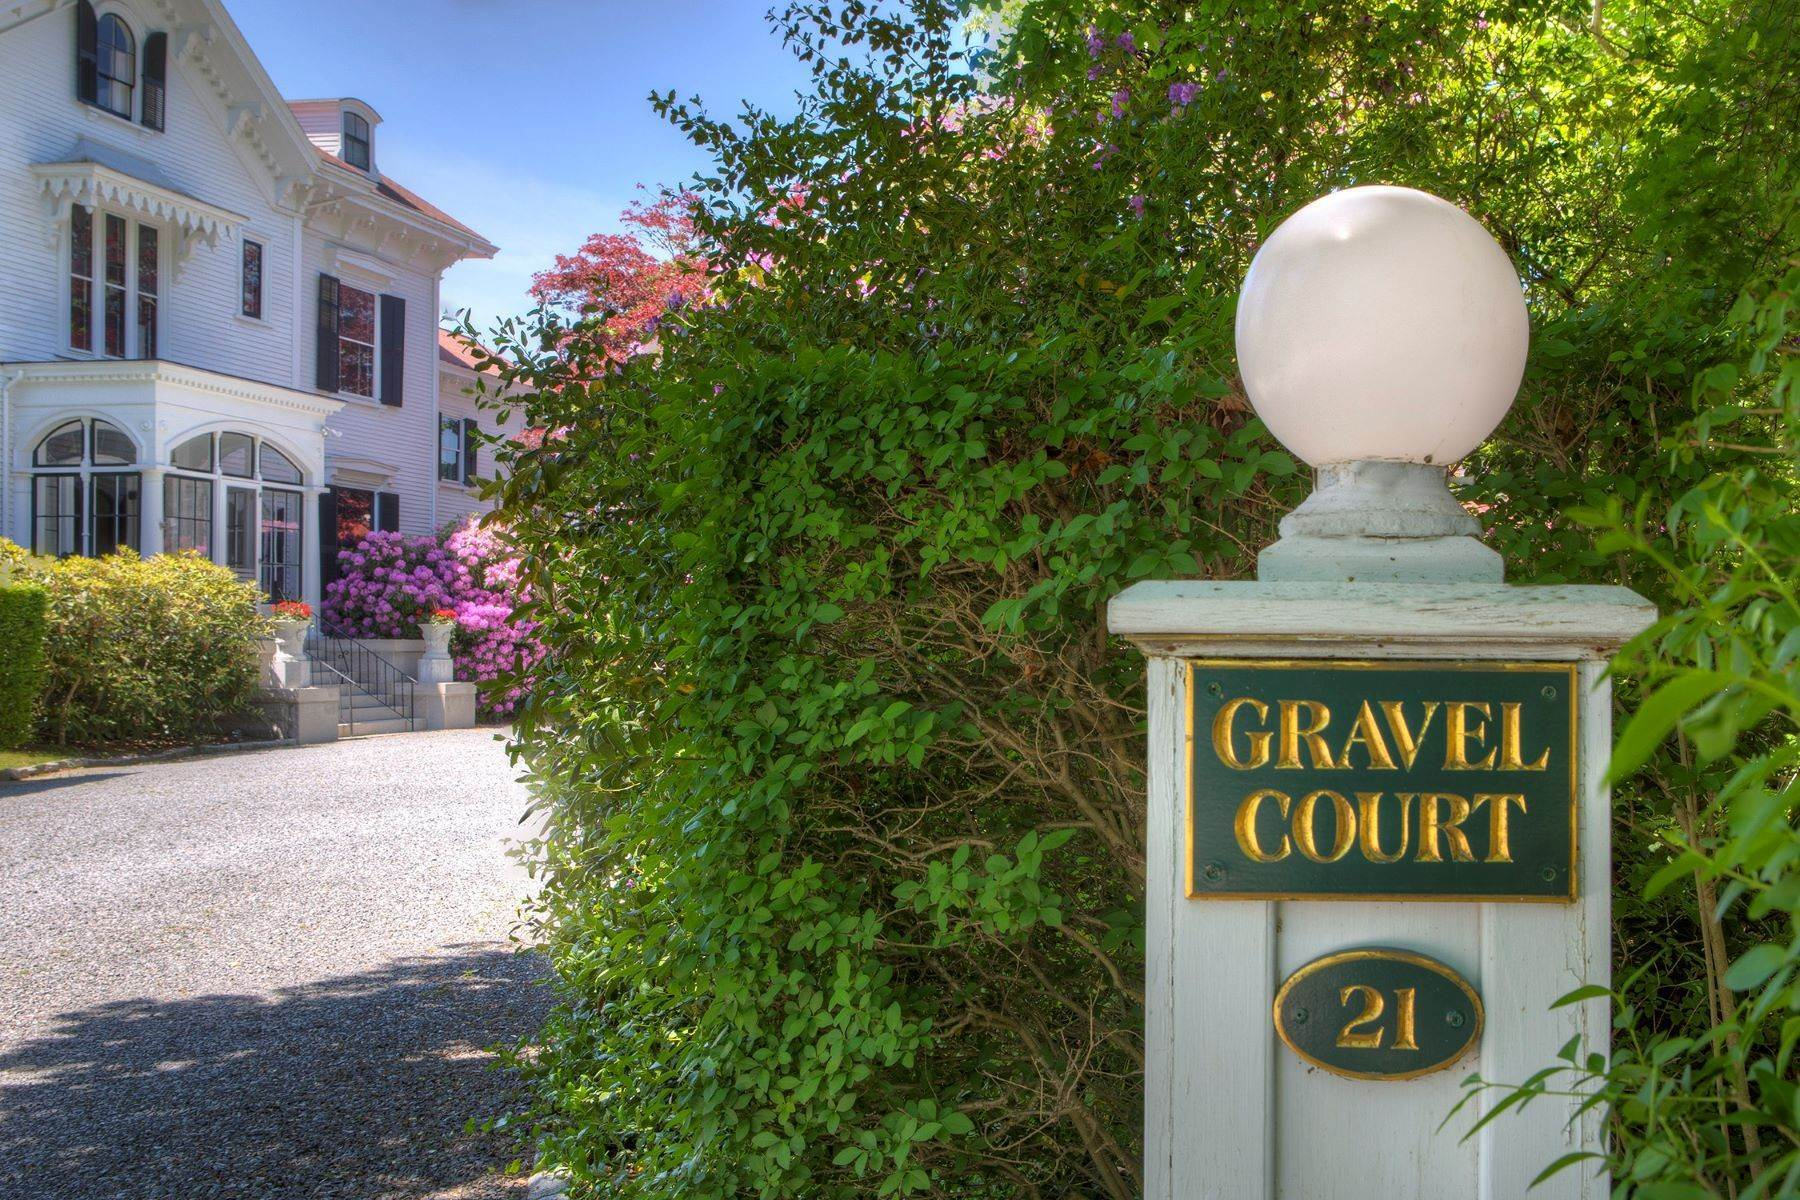 5. Single Family Homes for Sale at Gravel Court 21 Clay Street Newport, Rhode Island 02840 United States